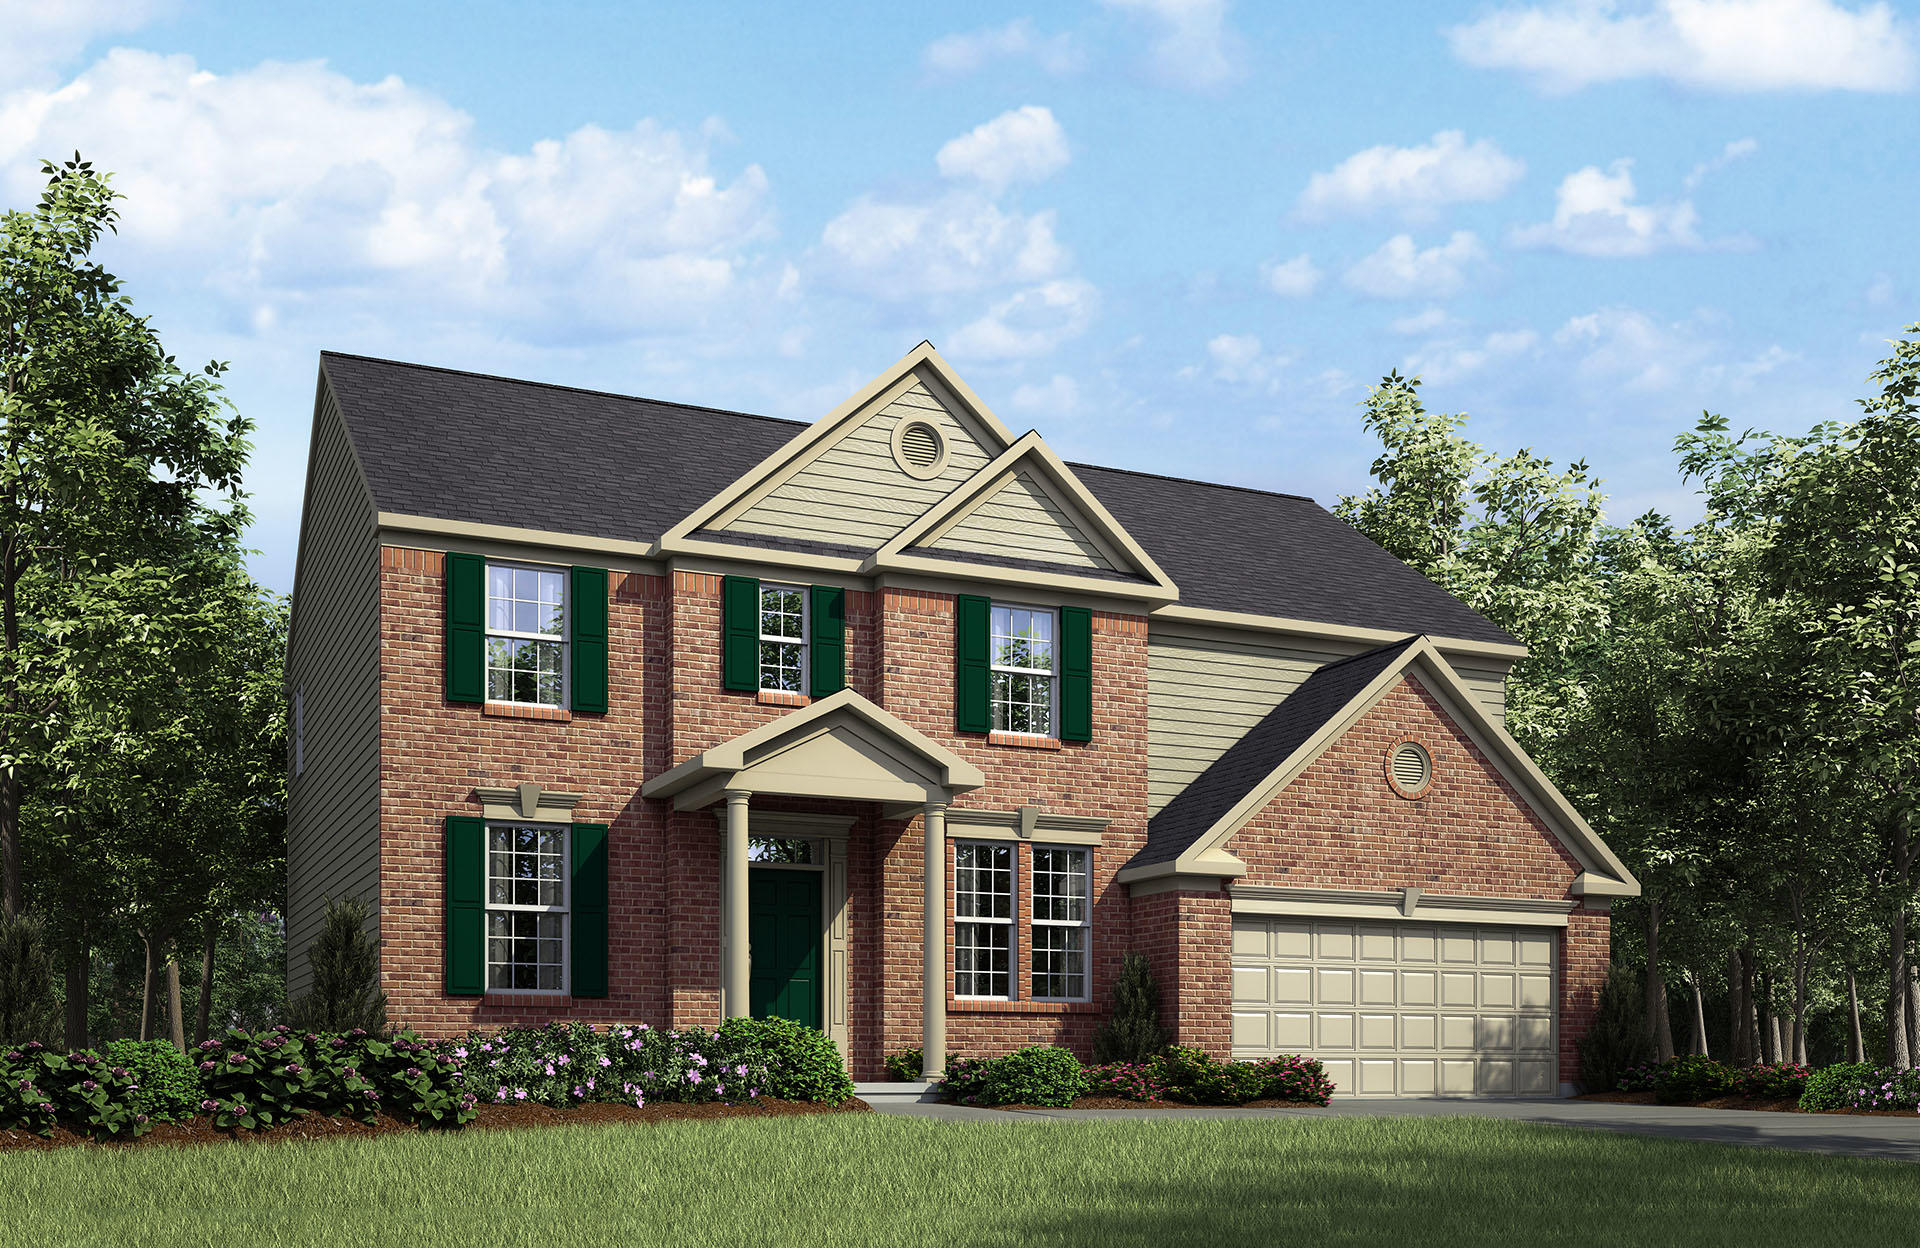 Quentin Plan, Frederick, MD 21704 - 4 Bed, 2.5 Bath Single-Family Home on centex home plans, green home plans, stilt home floor plans, white home plans, pulte home plans, nelson home plans,